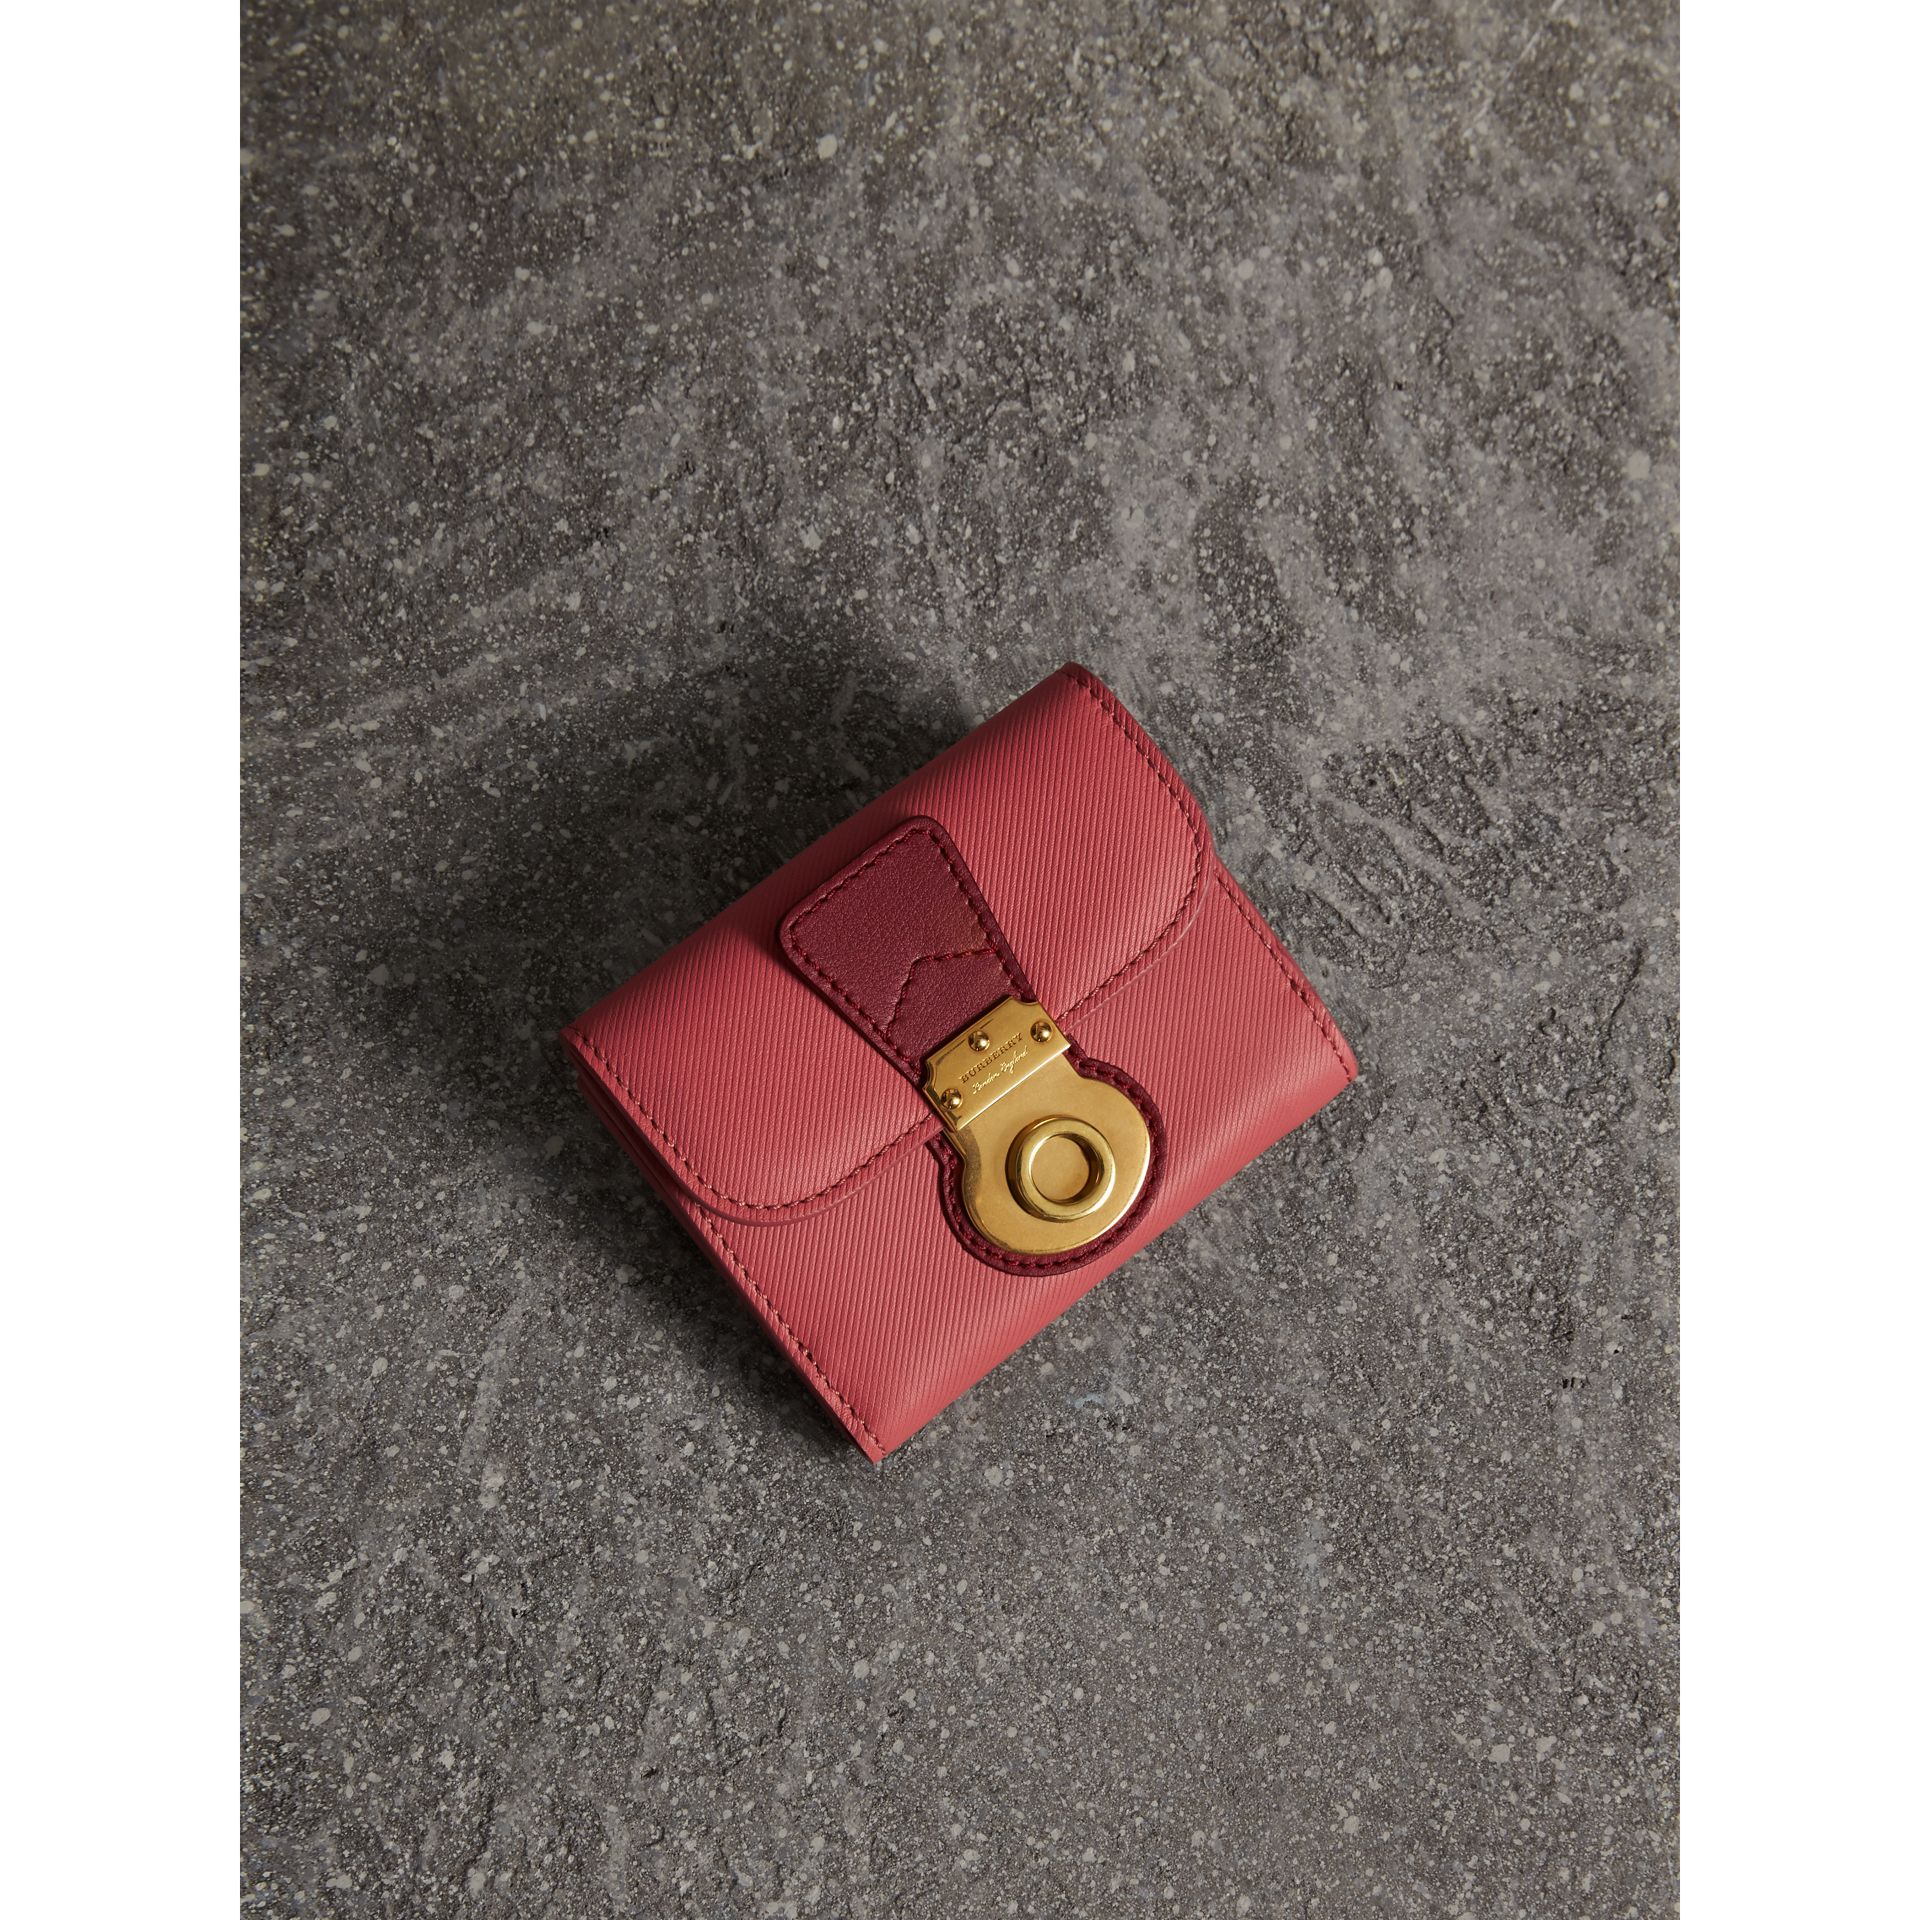 Two-tone Trench Leather Wallet in Blossom Pink/ Antique Red - Women | Burberry - gallery image 1